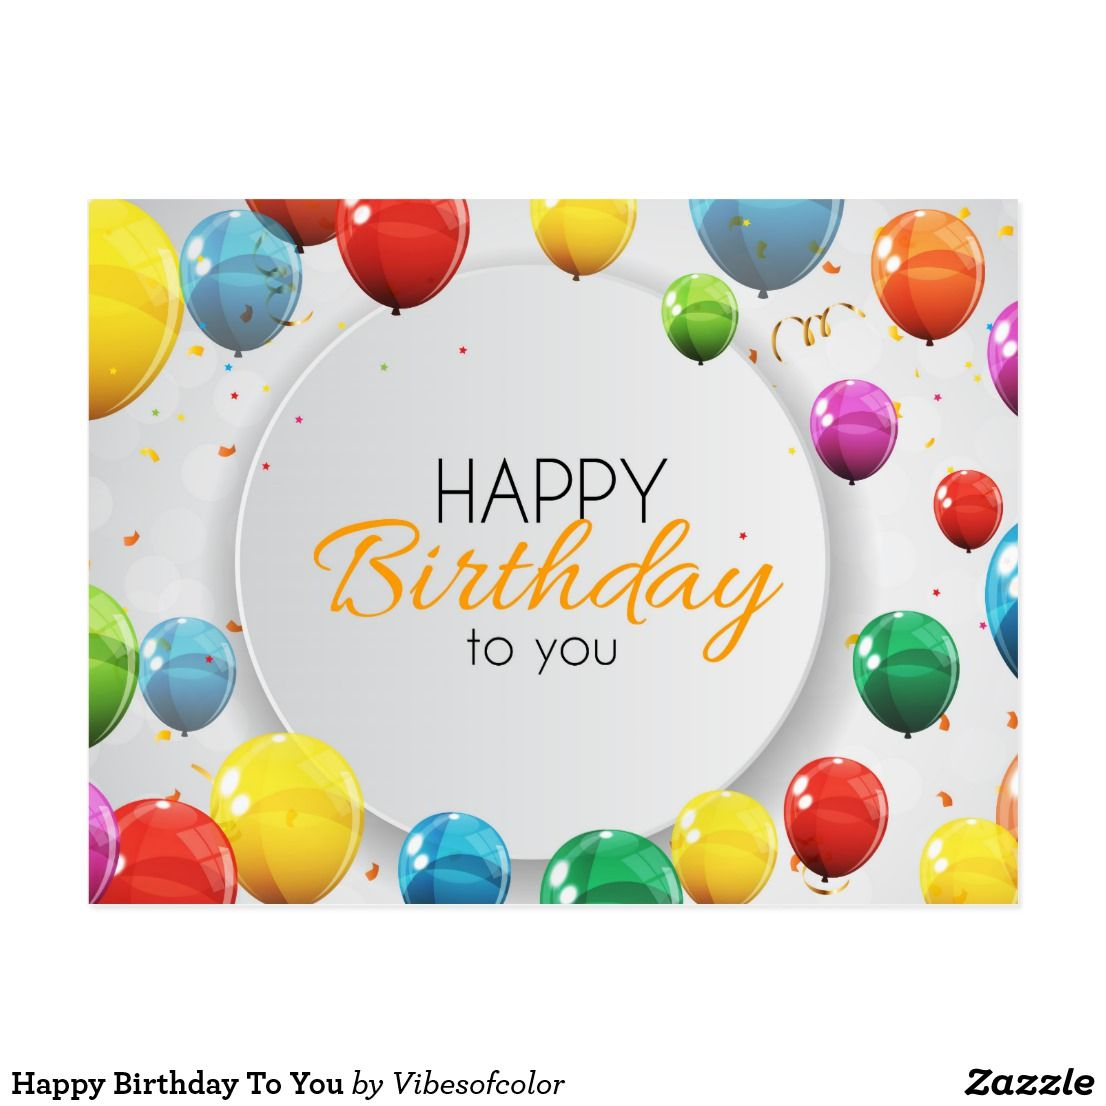 Happy Birthday To You Postcard Zazzle Com With Images Happy